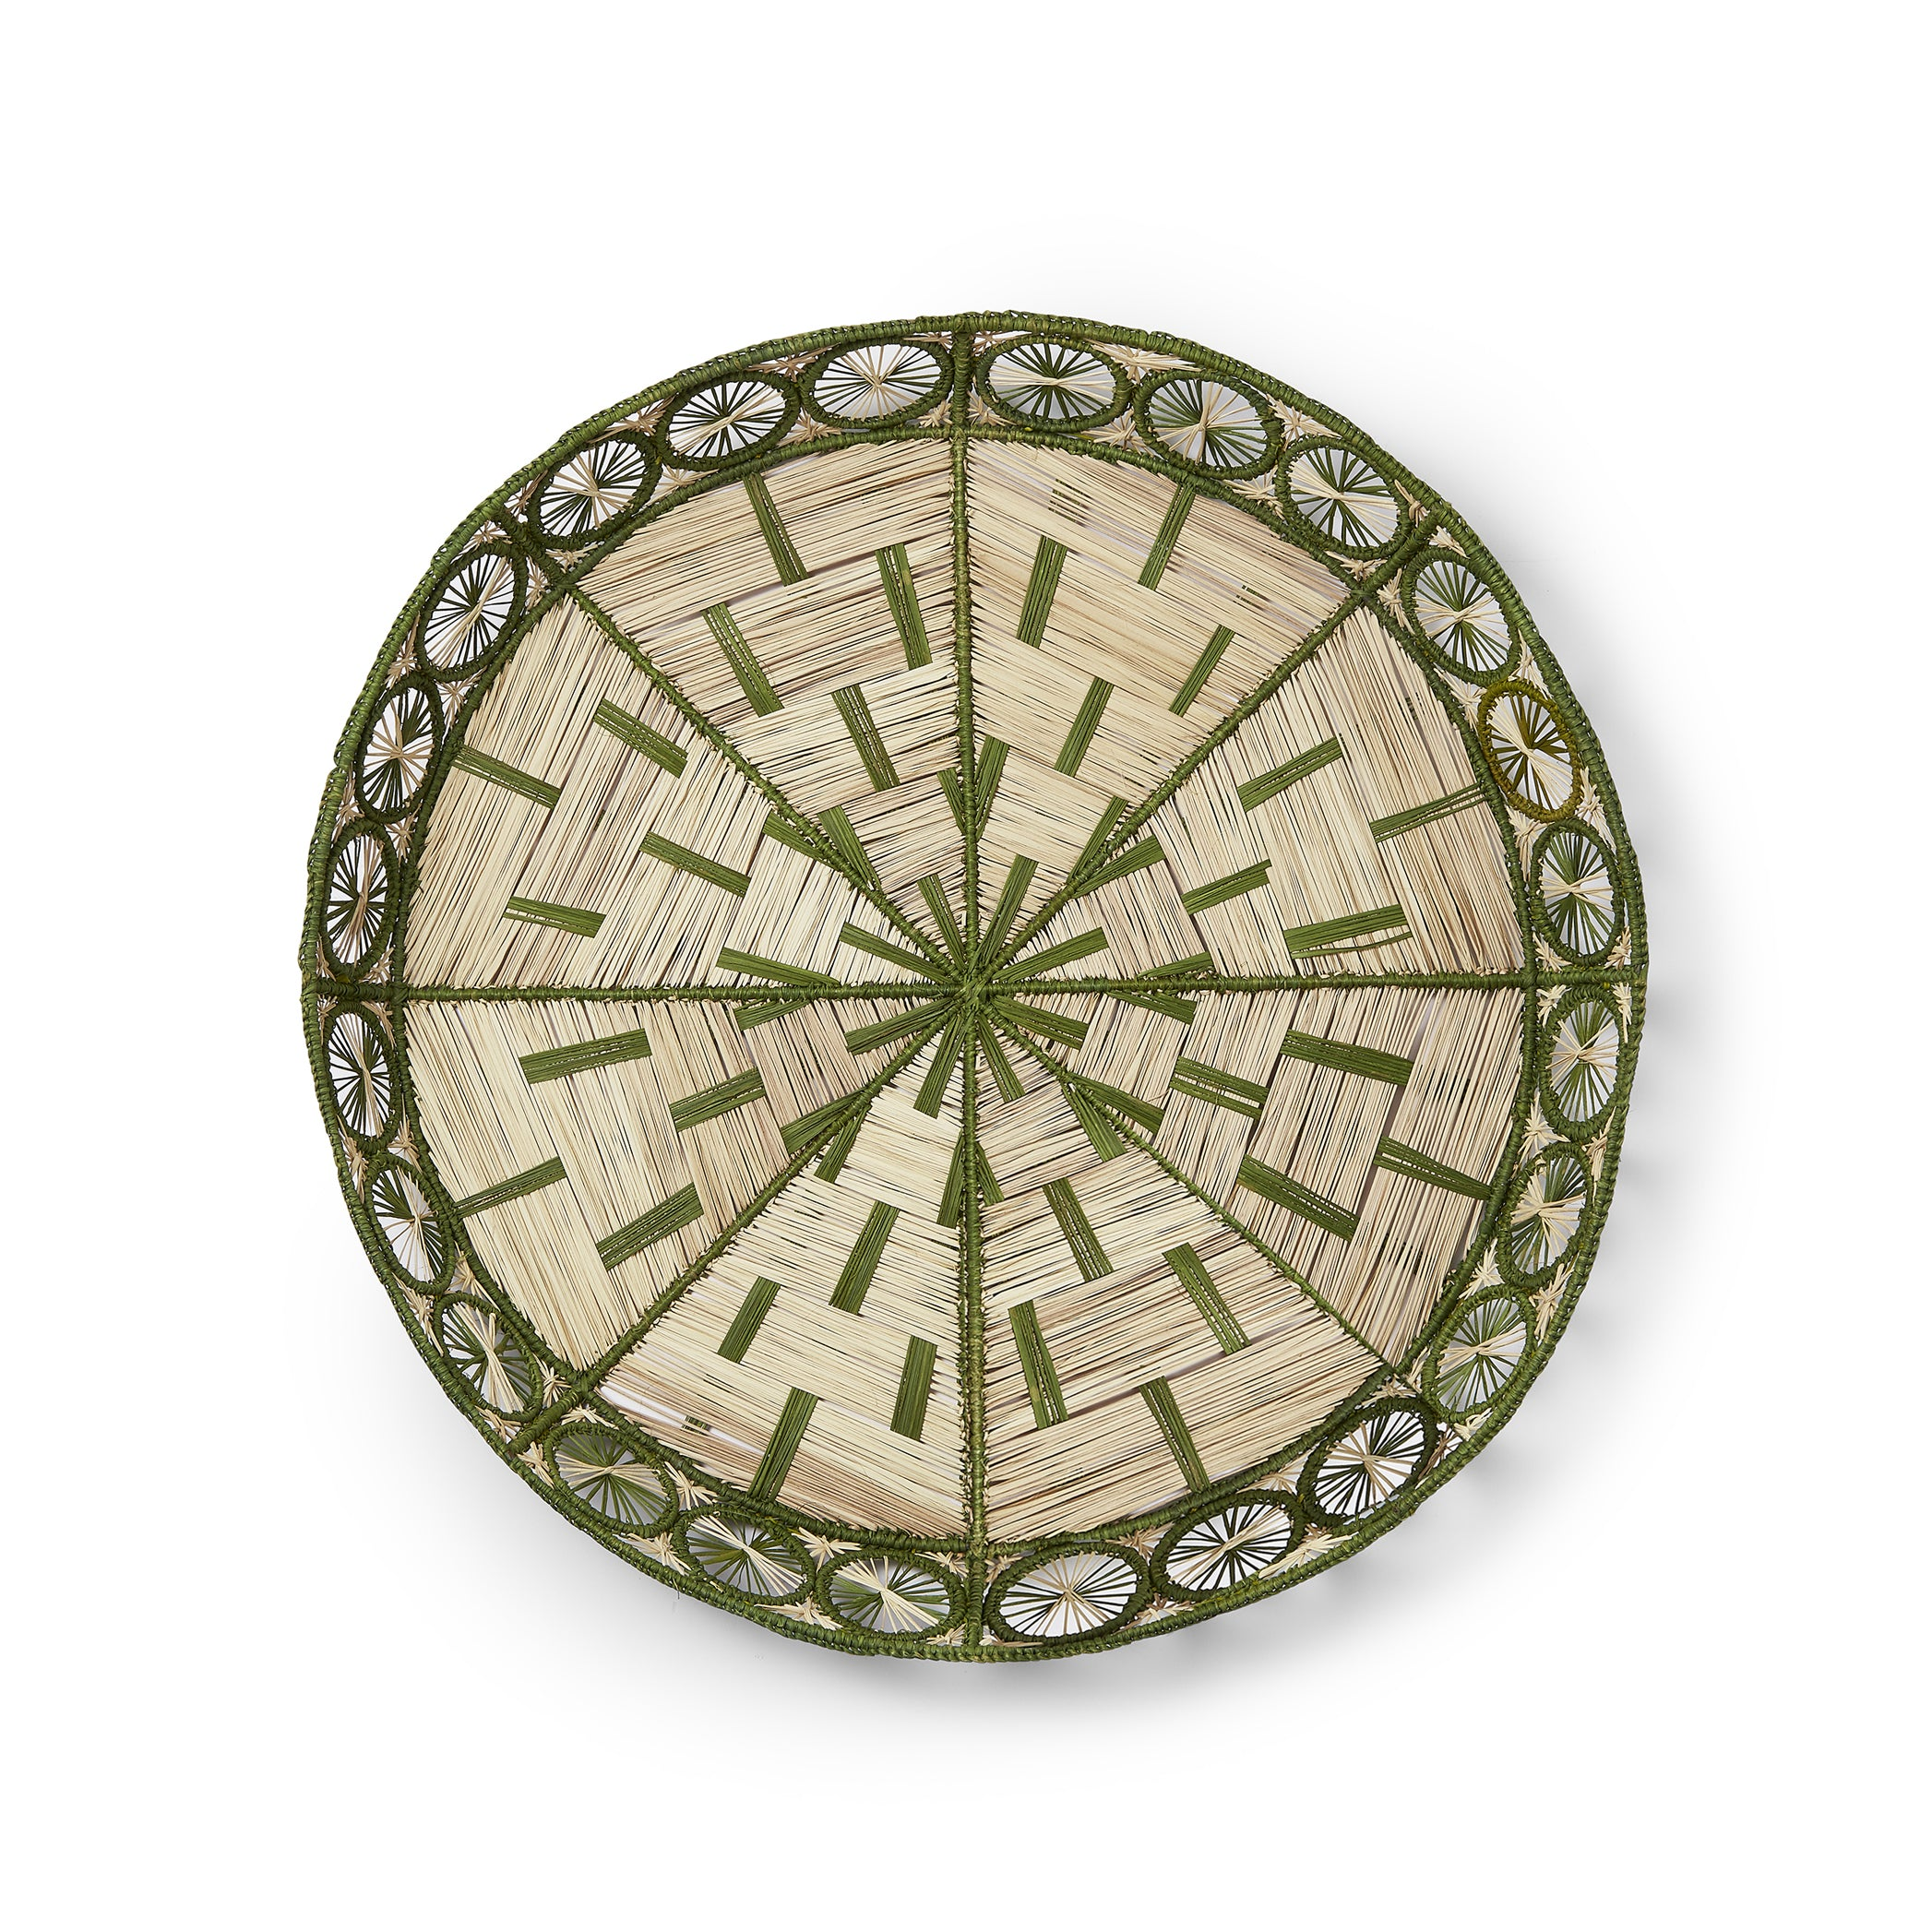 Handwoven Round Tray in Natural and Green, 50cm